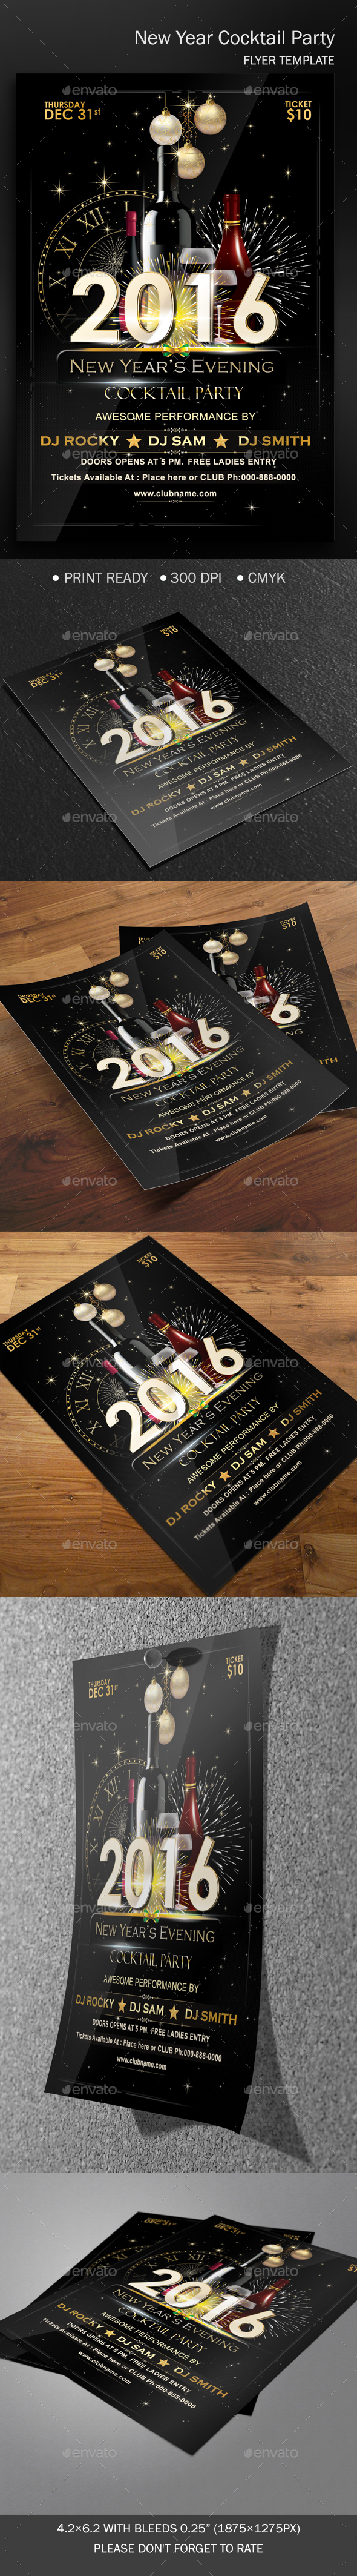 New Year's Cocktail Party Template - Clubs & Parties Events